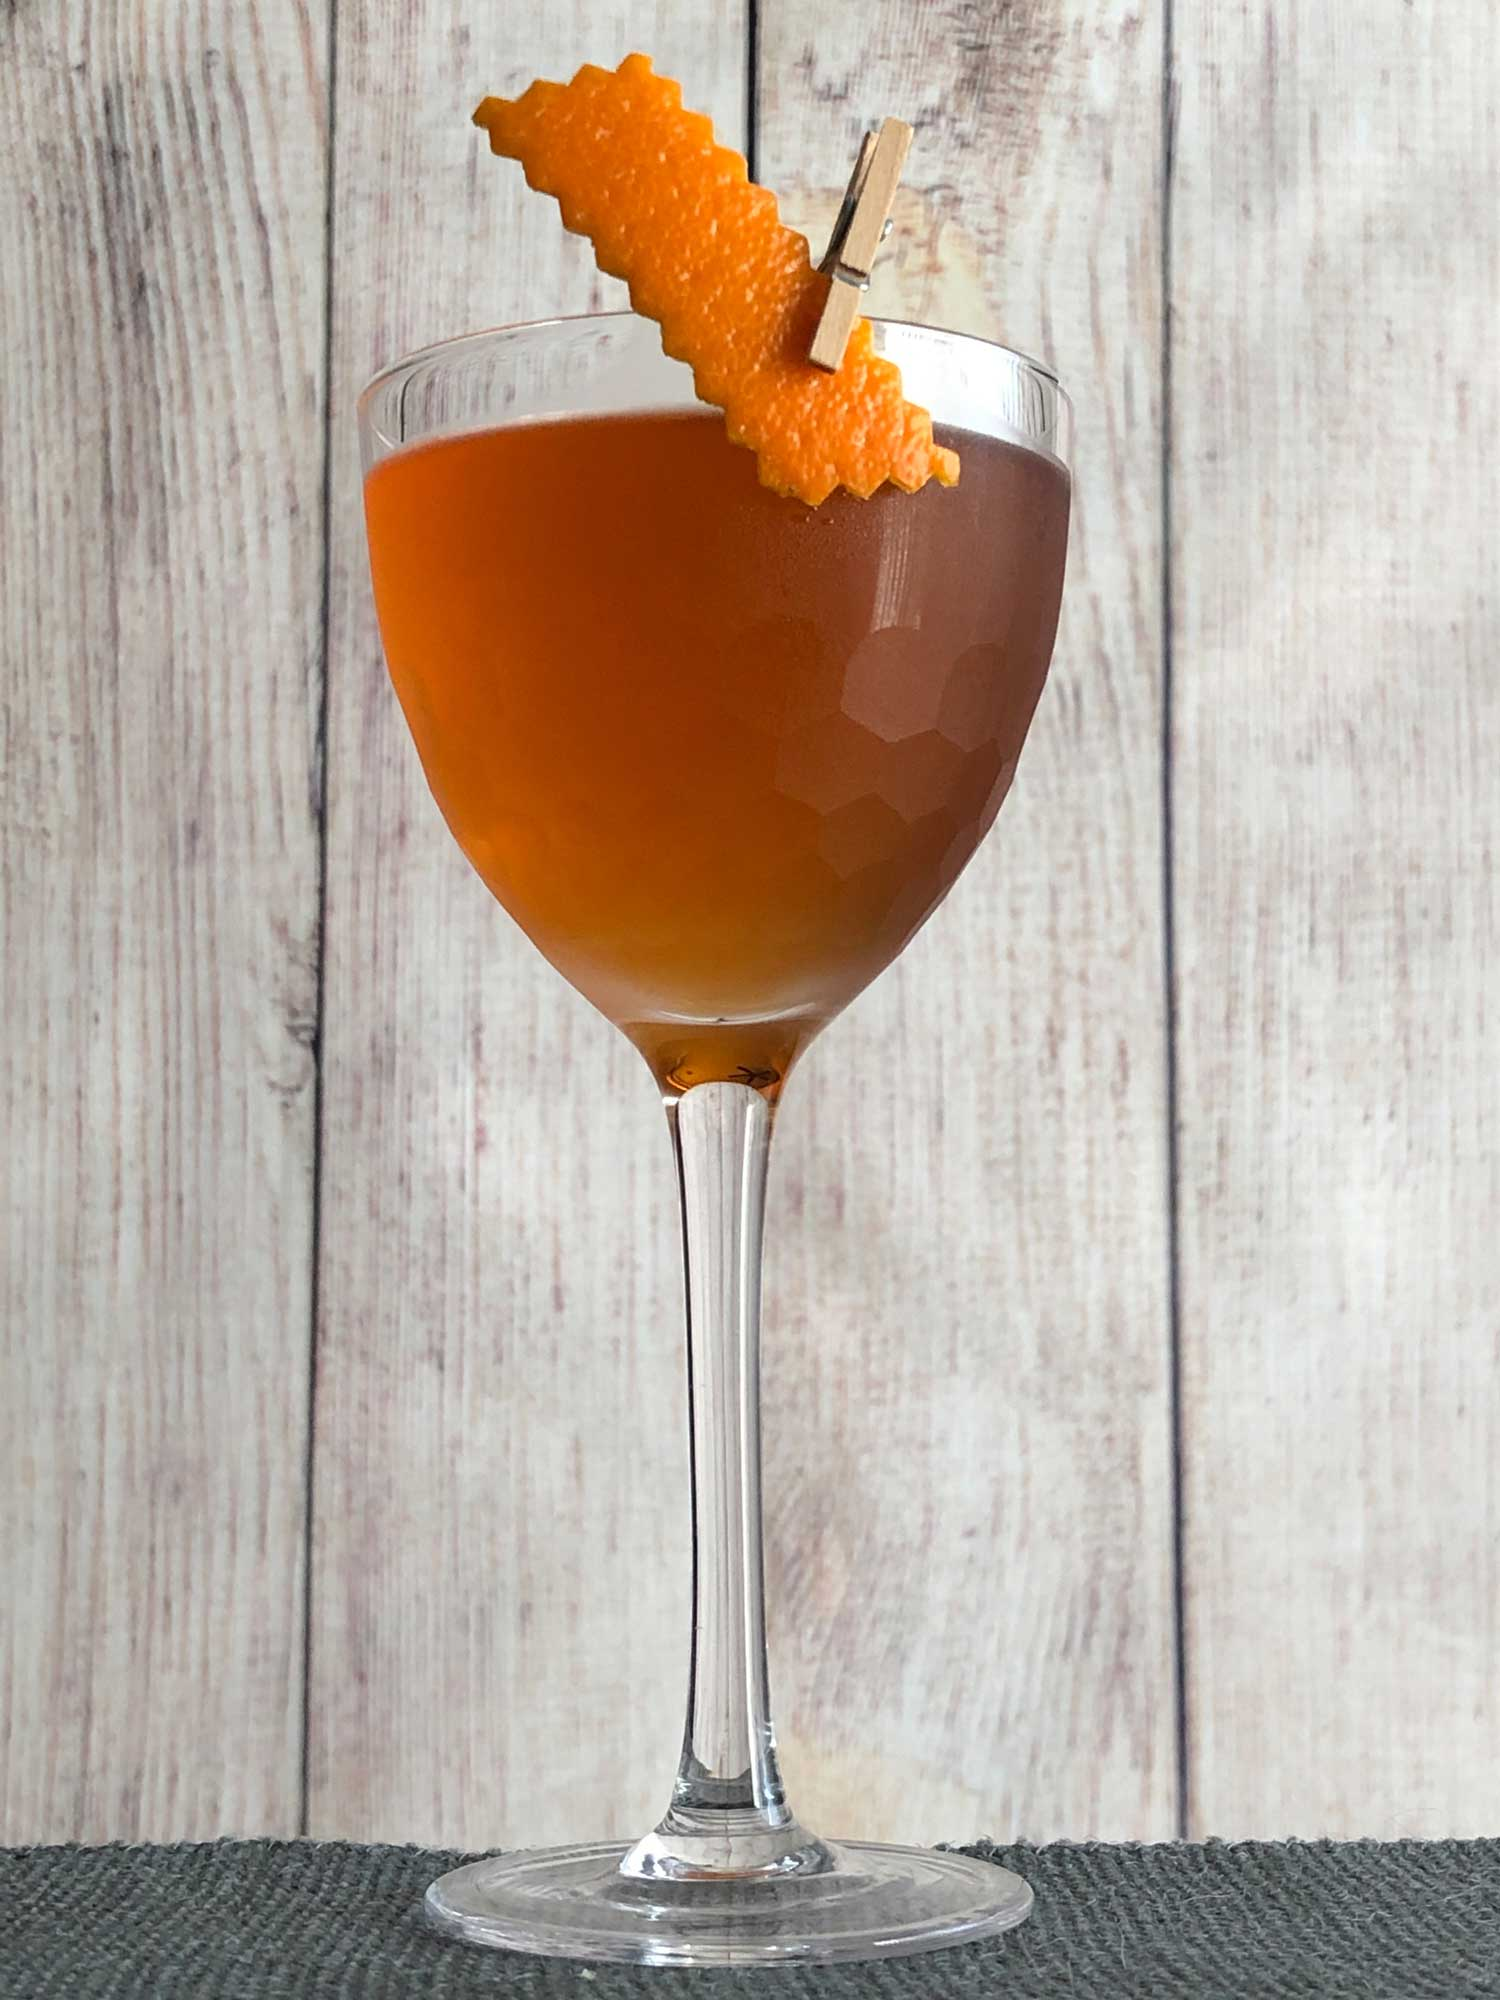 An example of the Overtime Cocktail, the mixed drink (cocktail), by based on the Coin Toss, Death & Co, New York City, featuring The Scarlet Ibis Trinidad Rum, Cocchi Vermouth di Torino, Dolin Génépy le Chamois Liqueur, Bénédictine, and Peychaud's Aromatic Cocktail Bitters; photo by Lee Edwards